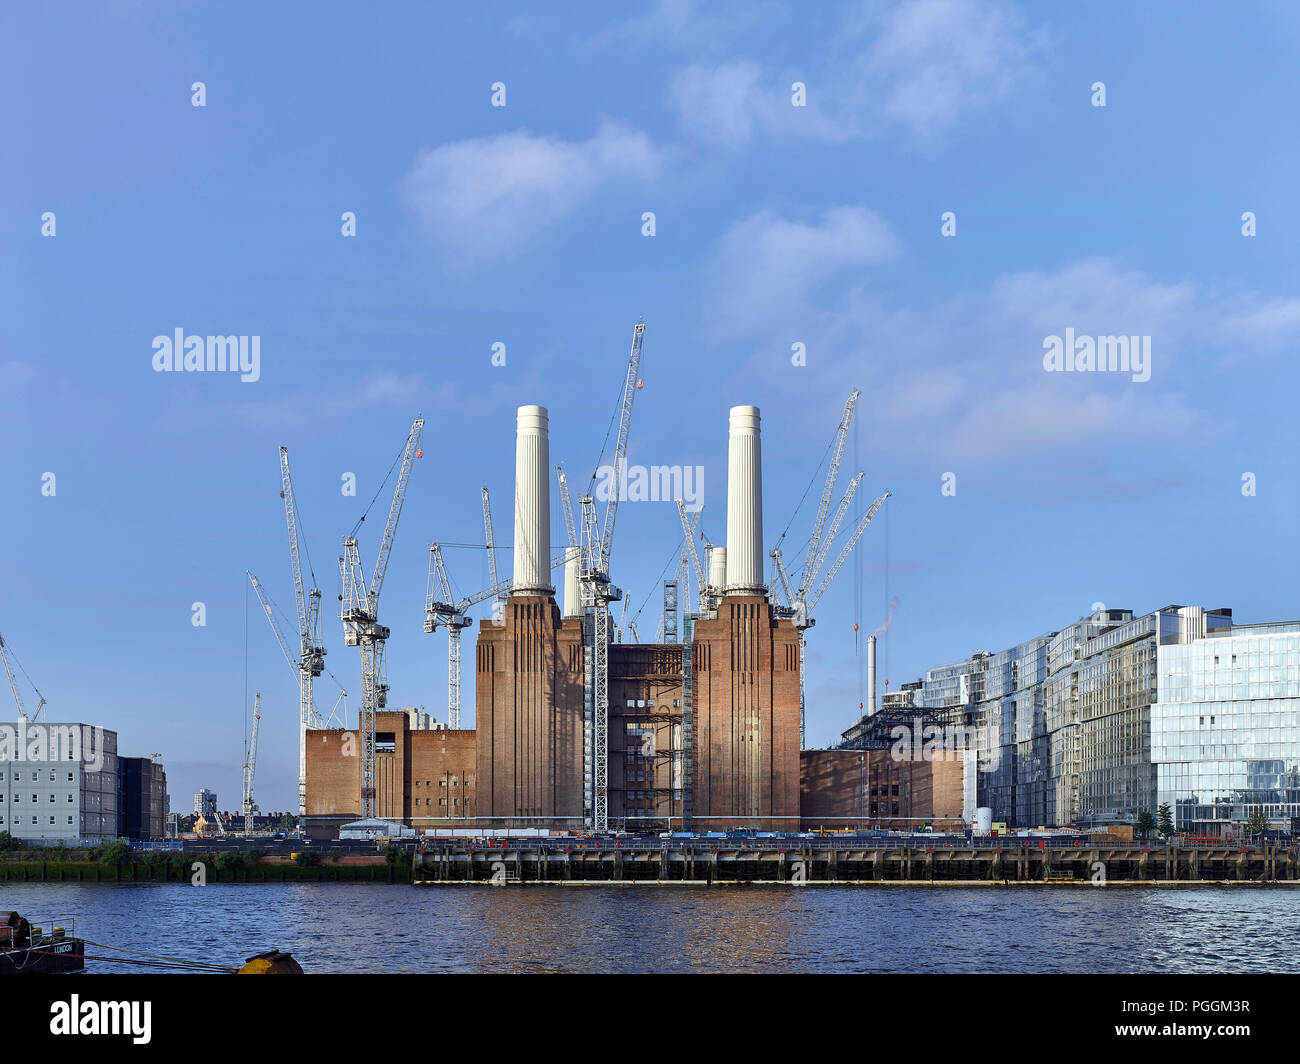 Front view across river. Battersea Power Station, under construction, London, United Kingdom. Architect: Sir Giles Gilbert Scott, 1953. - Stock Image